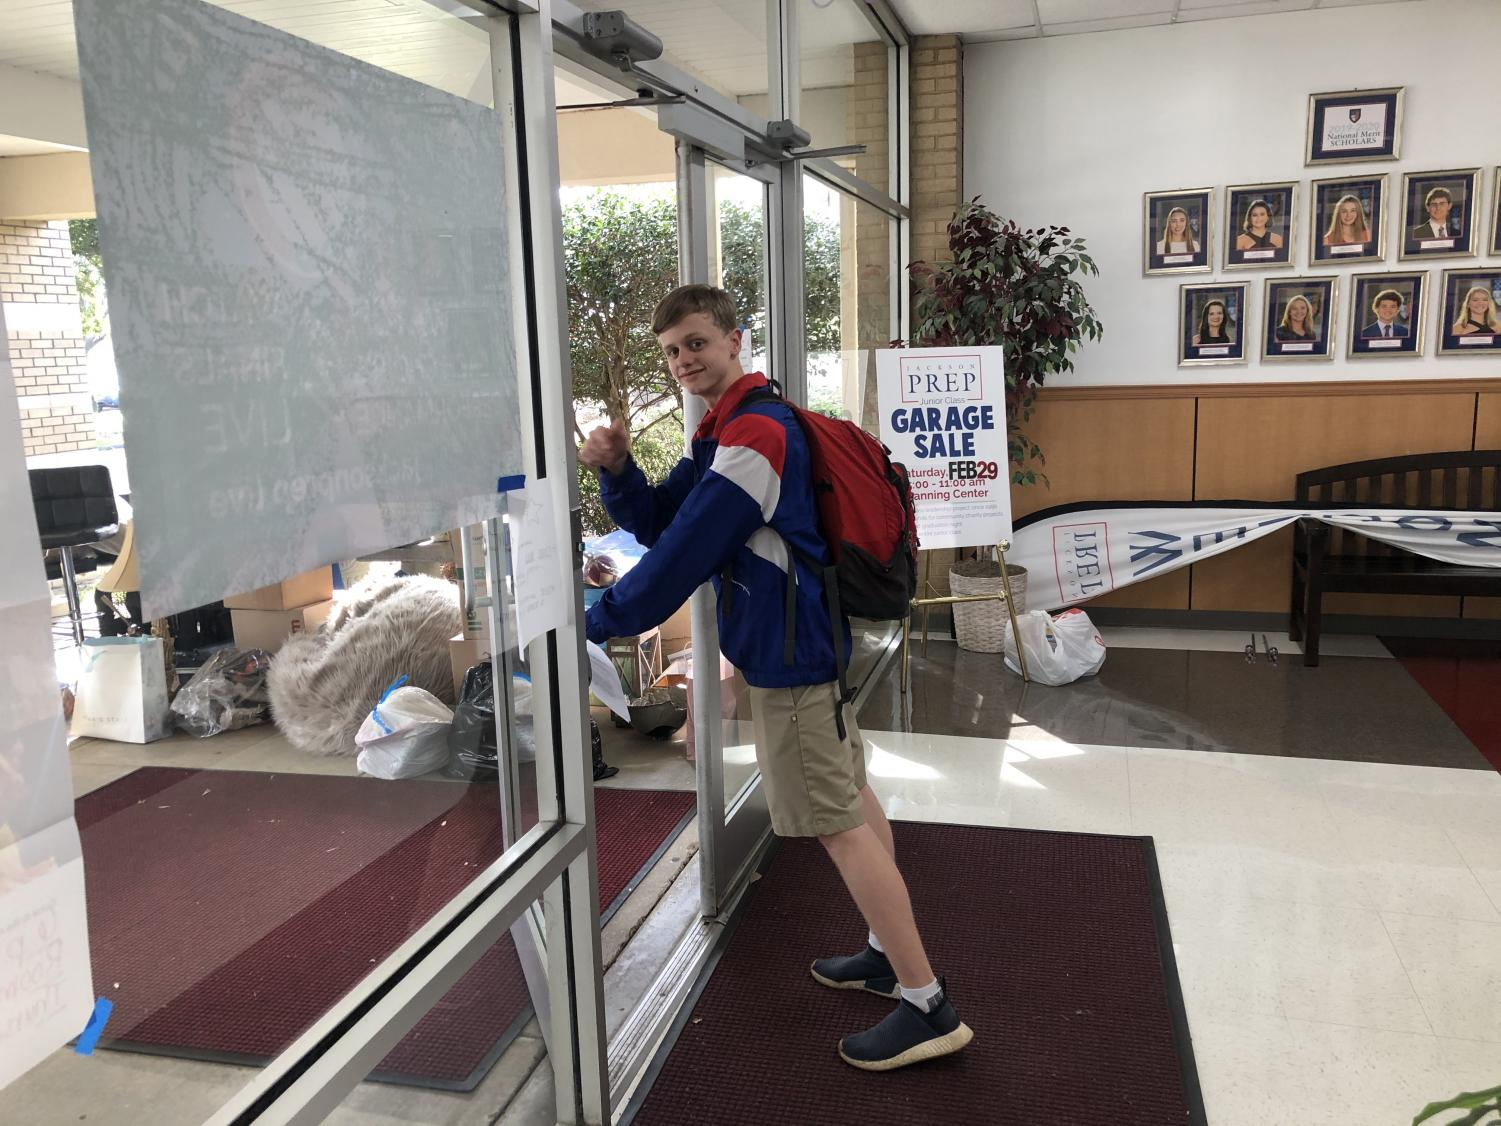 Senior Jimmy Underwood is outta here, courtesy of